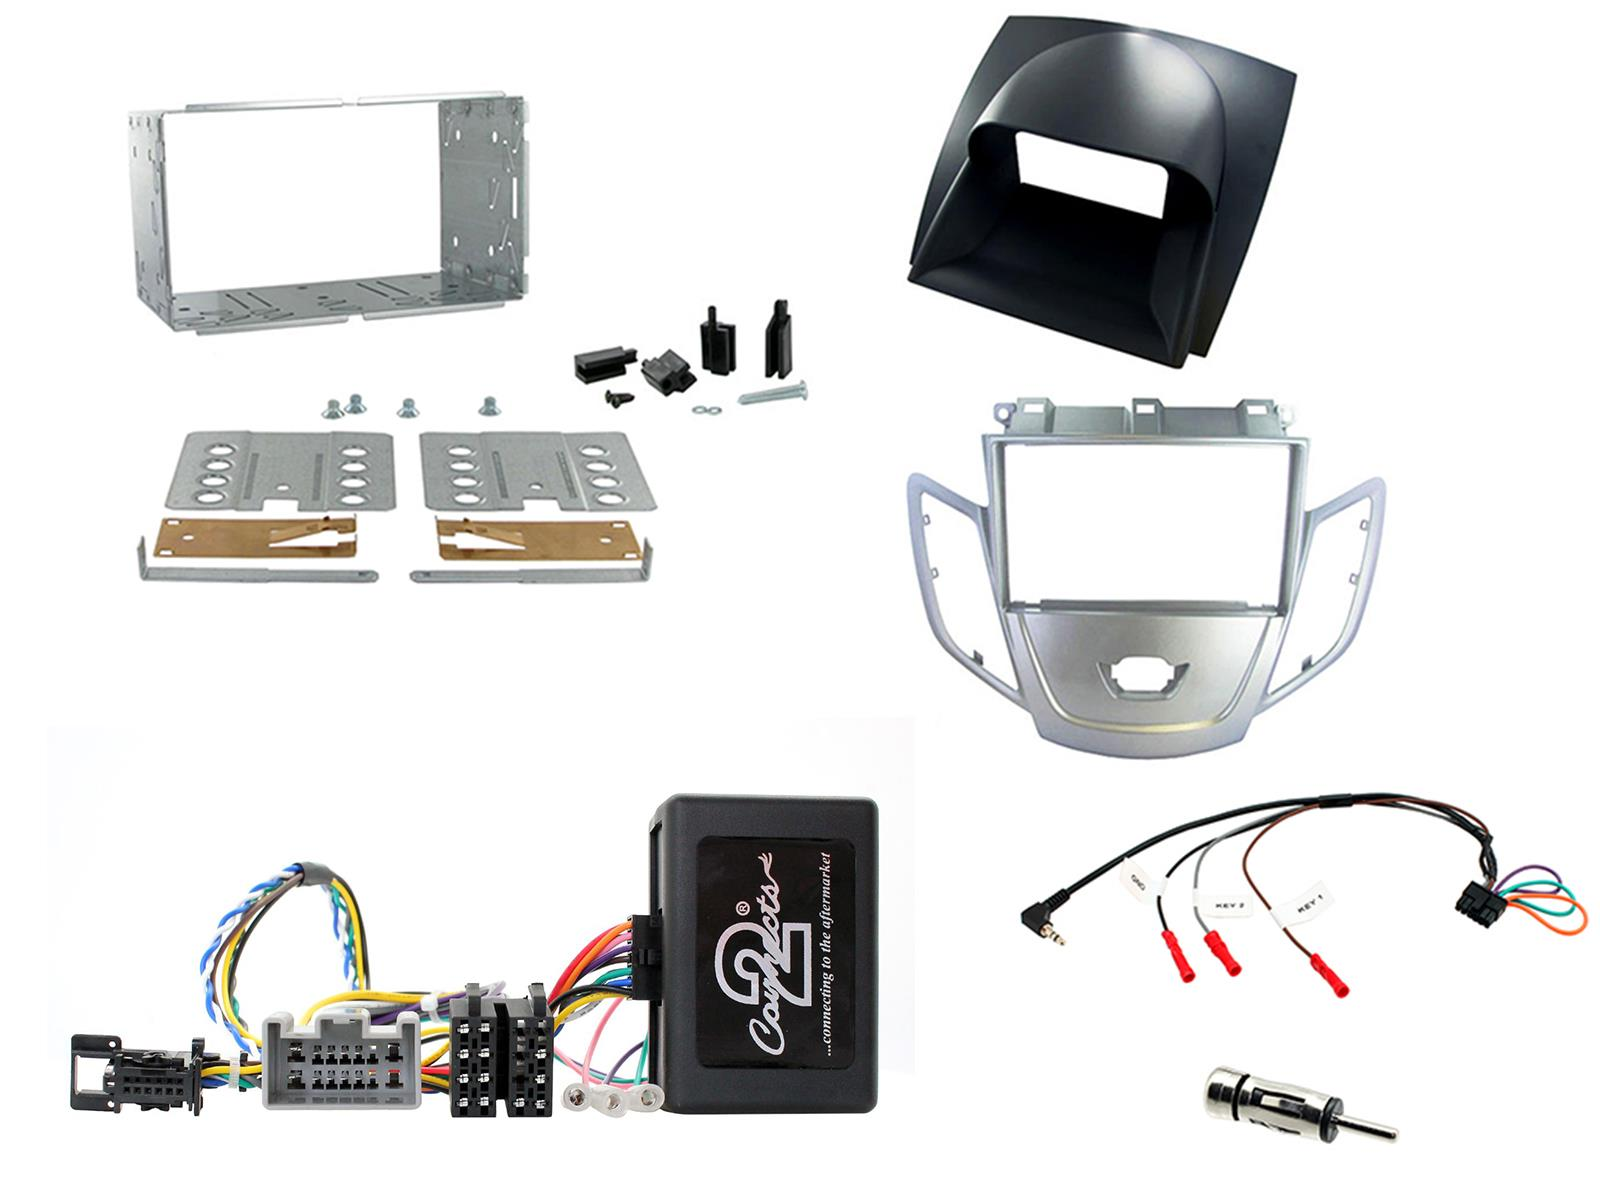 CTKFD01-ISO CD RADIO STEREO FASCIA FACIA FITTING KIT FOR FORD FOCUS MK1 MONDEO